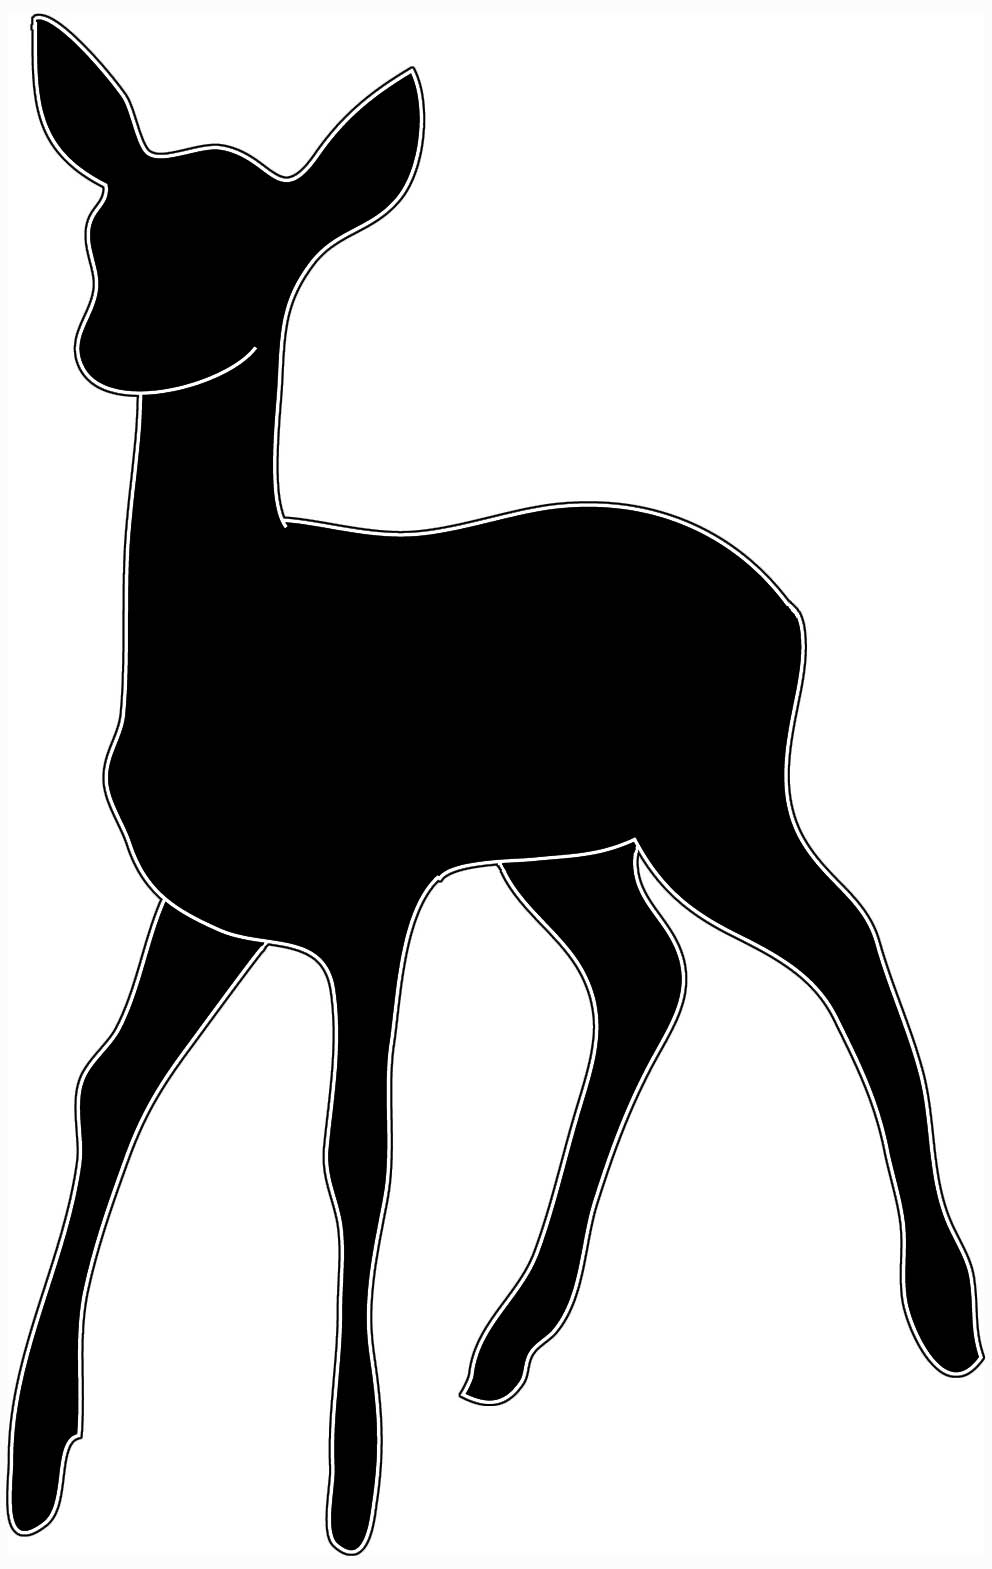 Free Doe Cliparts, Download Free Clip Art, Free Clip Art on.